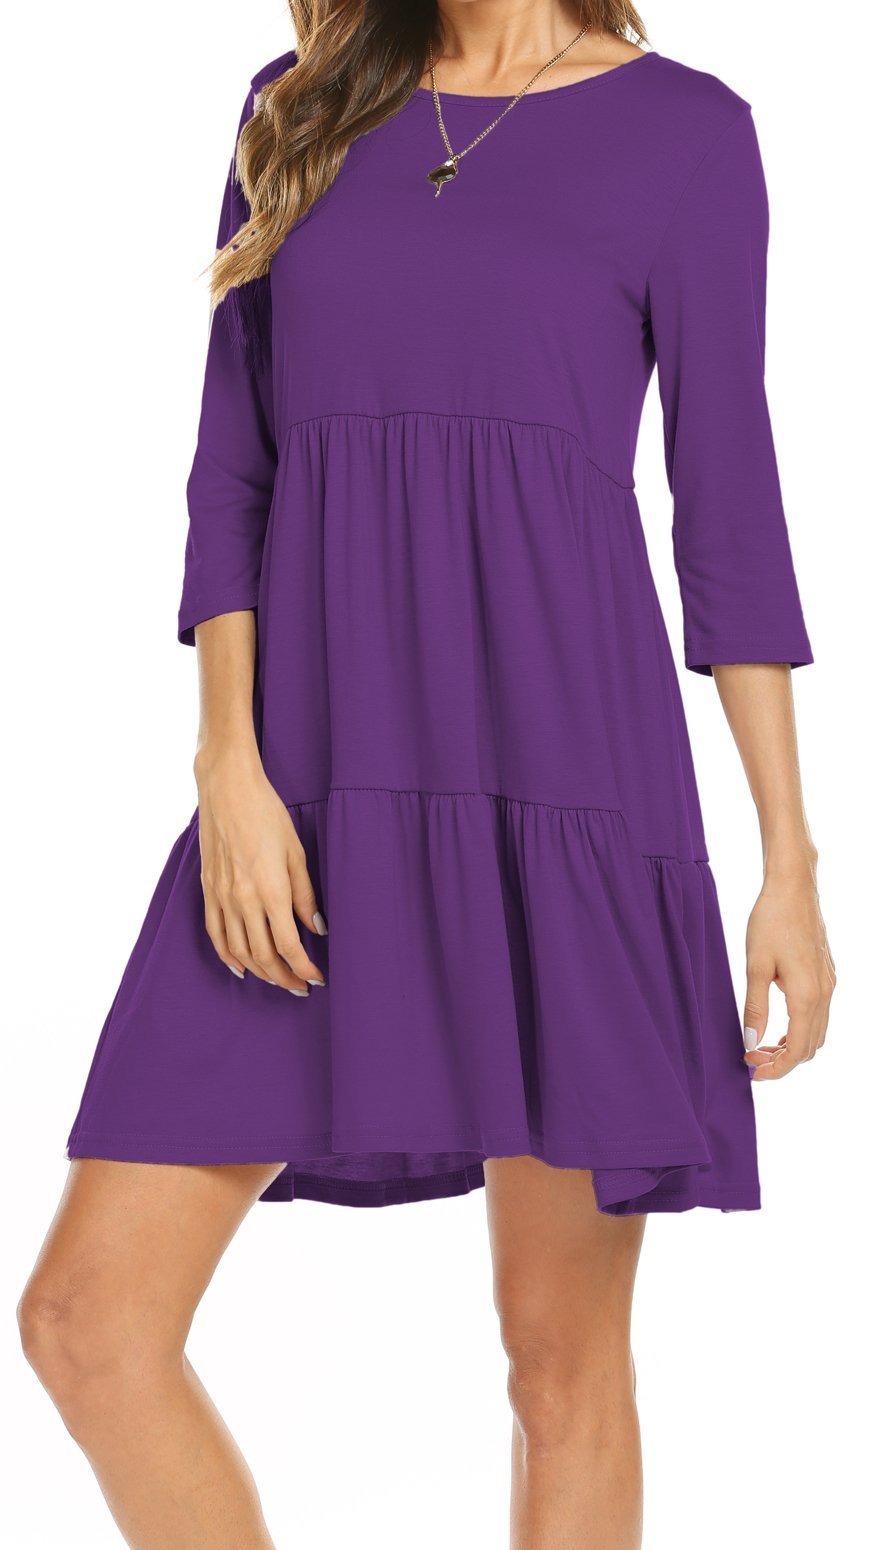 Round Neck Dress with Sleeves Light Purple, Multicolor Formal Dress for Ladies Party (S, Purple)